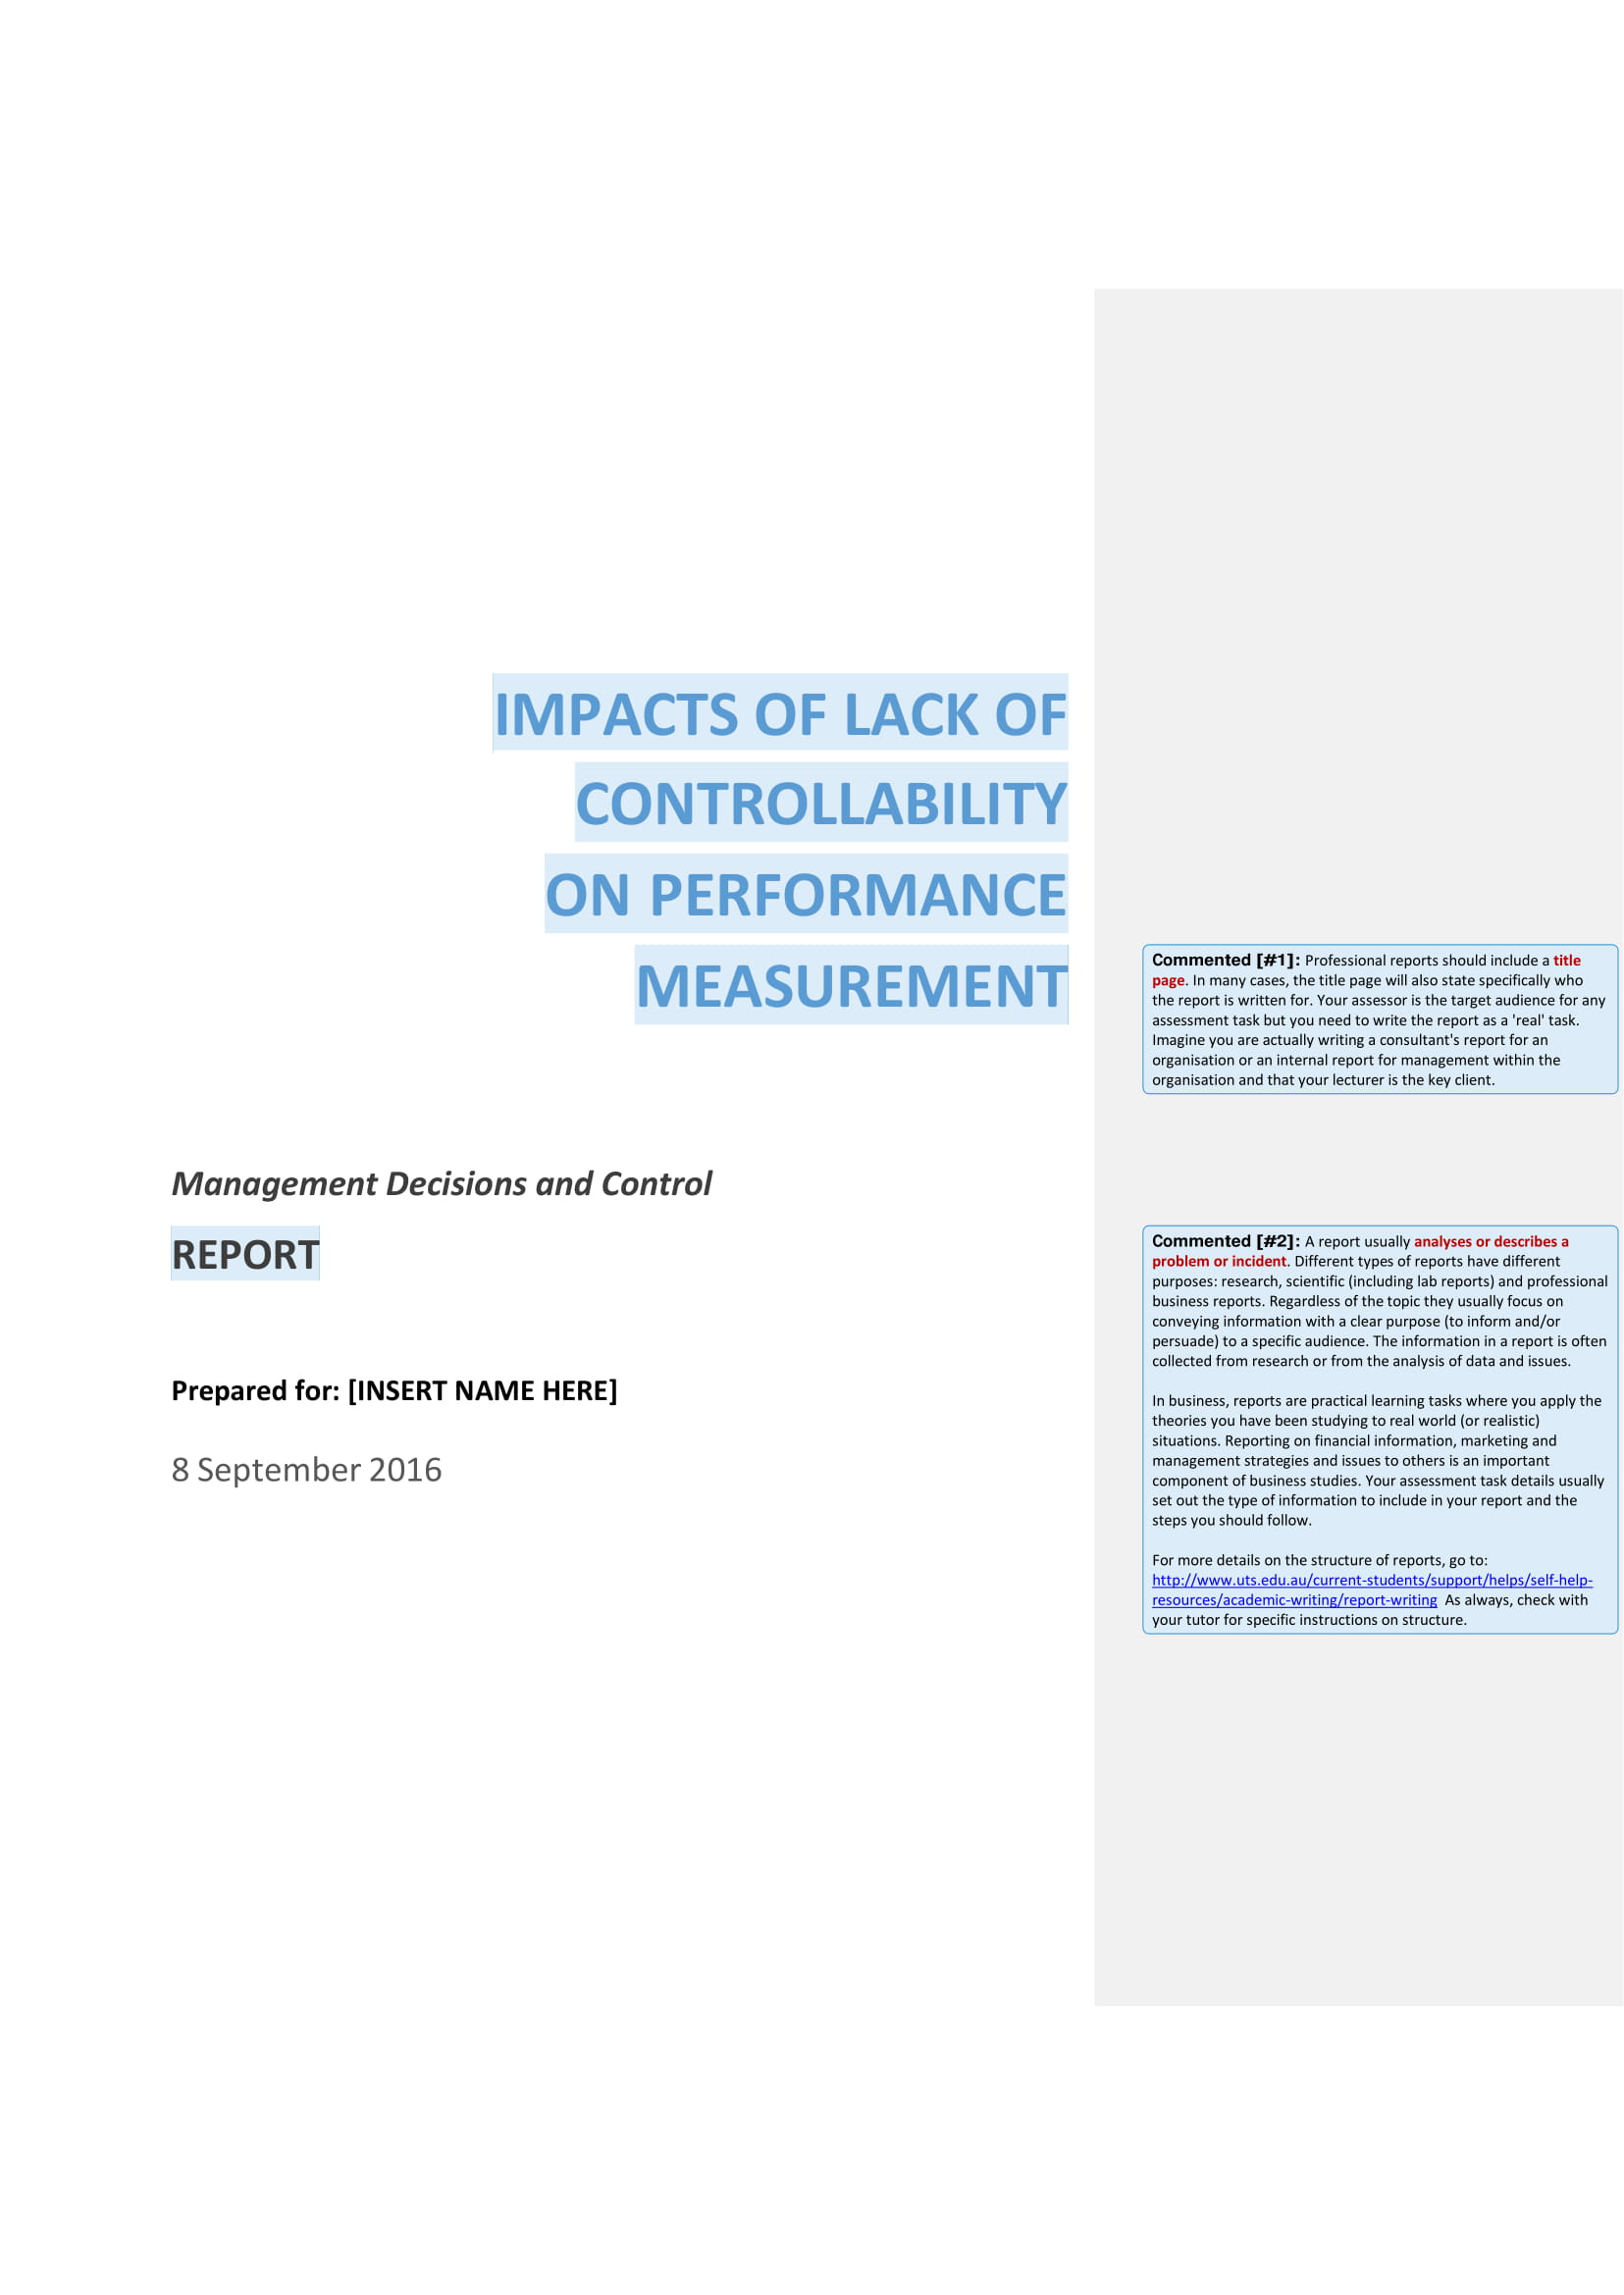 management decisions and control academic report example